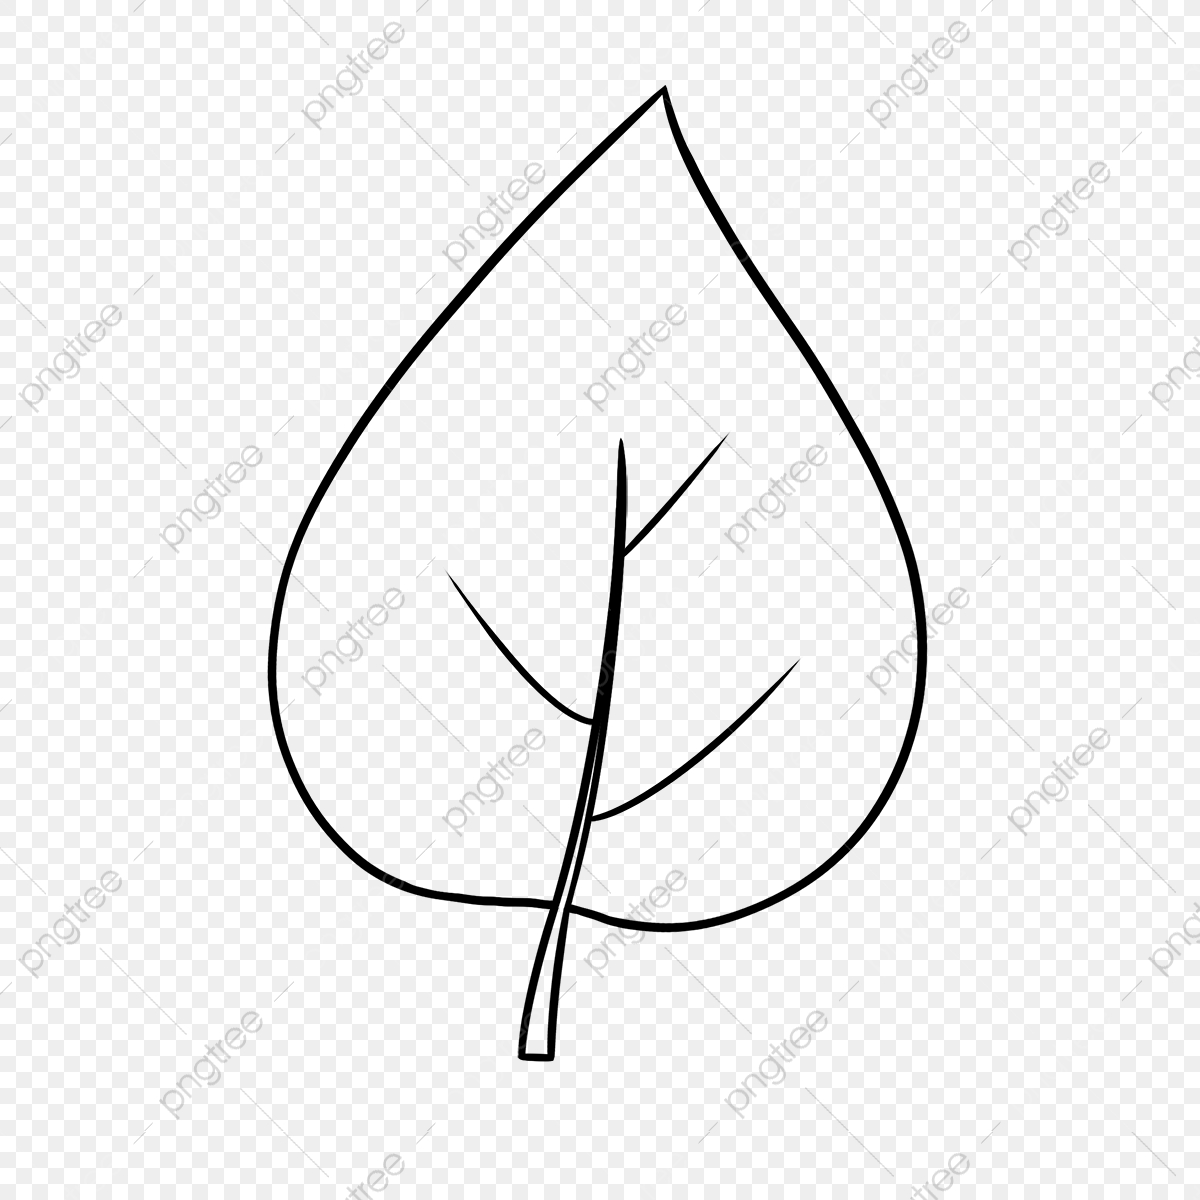 Cartoon Leaf Black And White Clipart Leaf Clipart Black And White Leaf Clipart Png Transparent Clipart Image And Psd File For Free Download